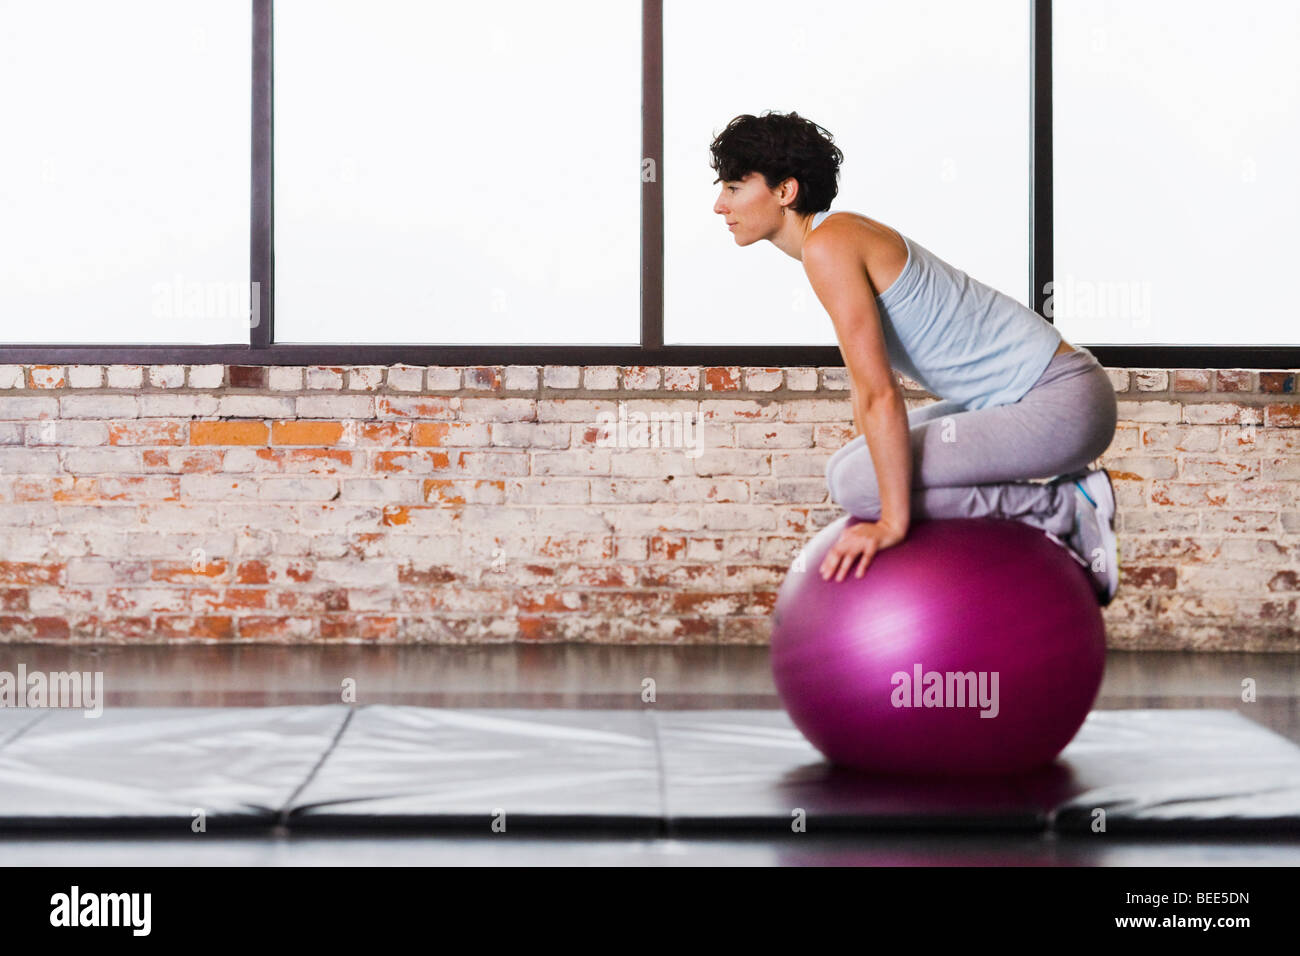 A young woman balancing atop an exercise ball while kneeling on it. - Stock Image